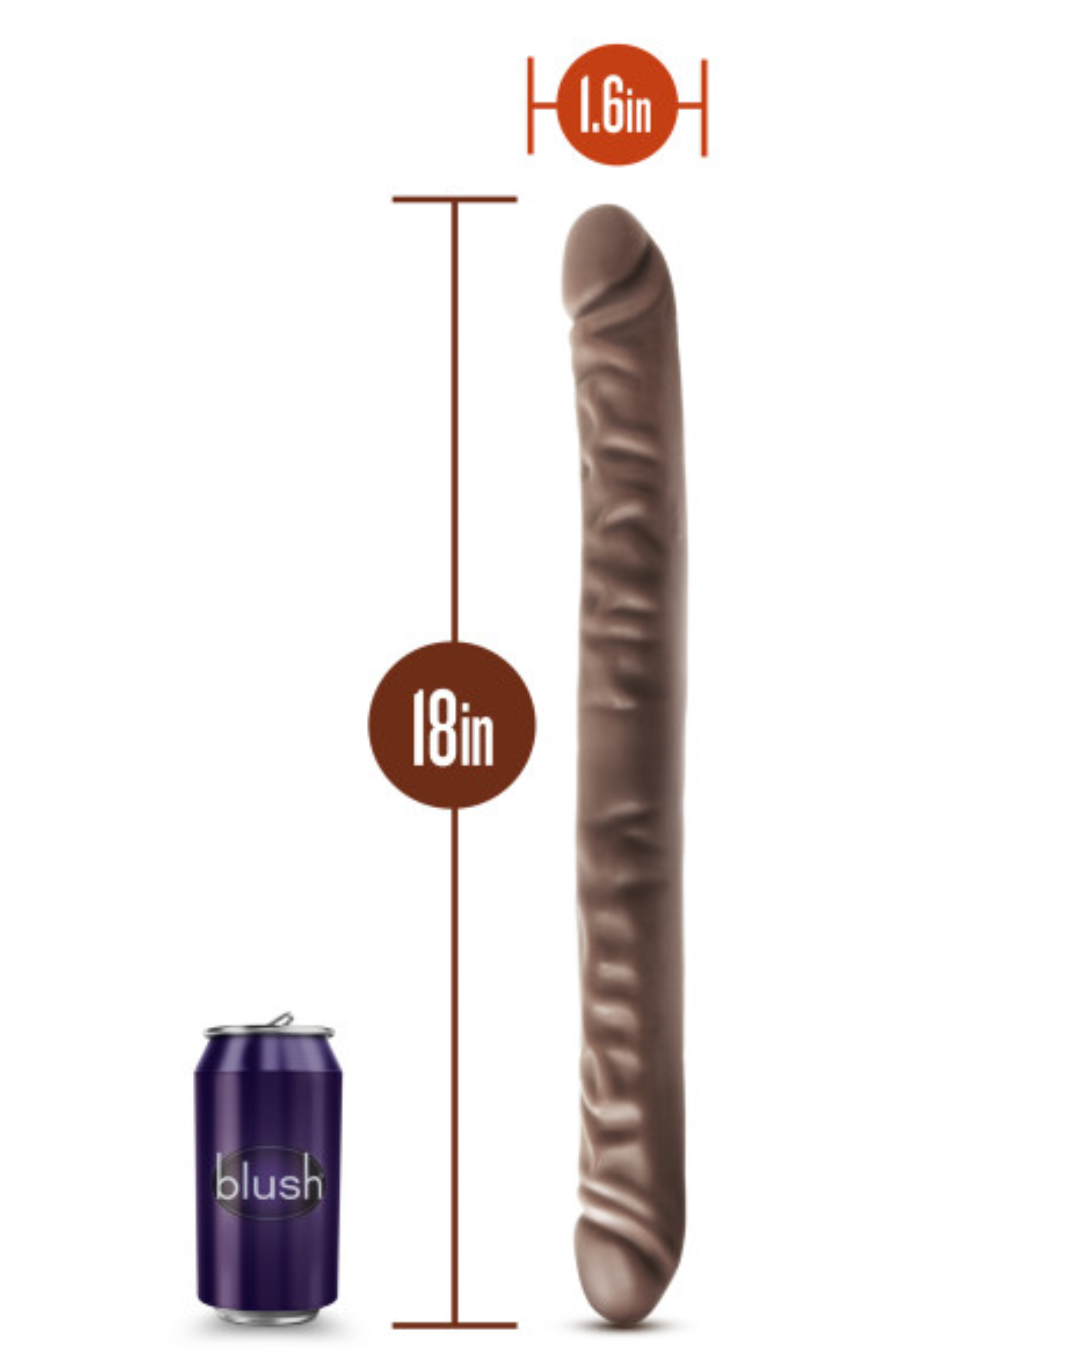 Dr. Skin 18 Inch Realistic Double Dildo - Chocolate with measurements